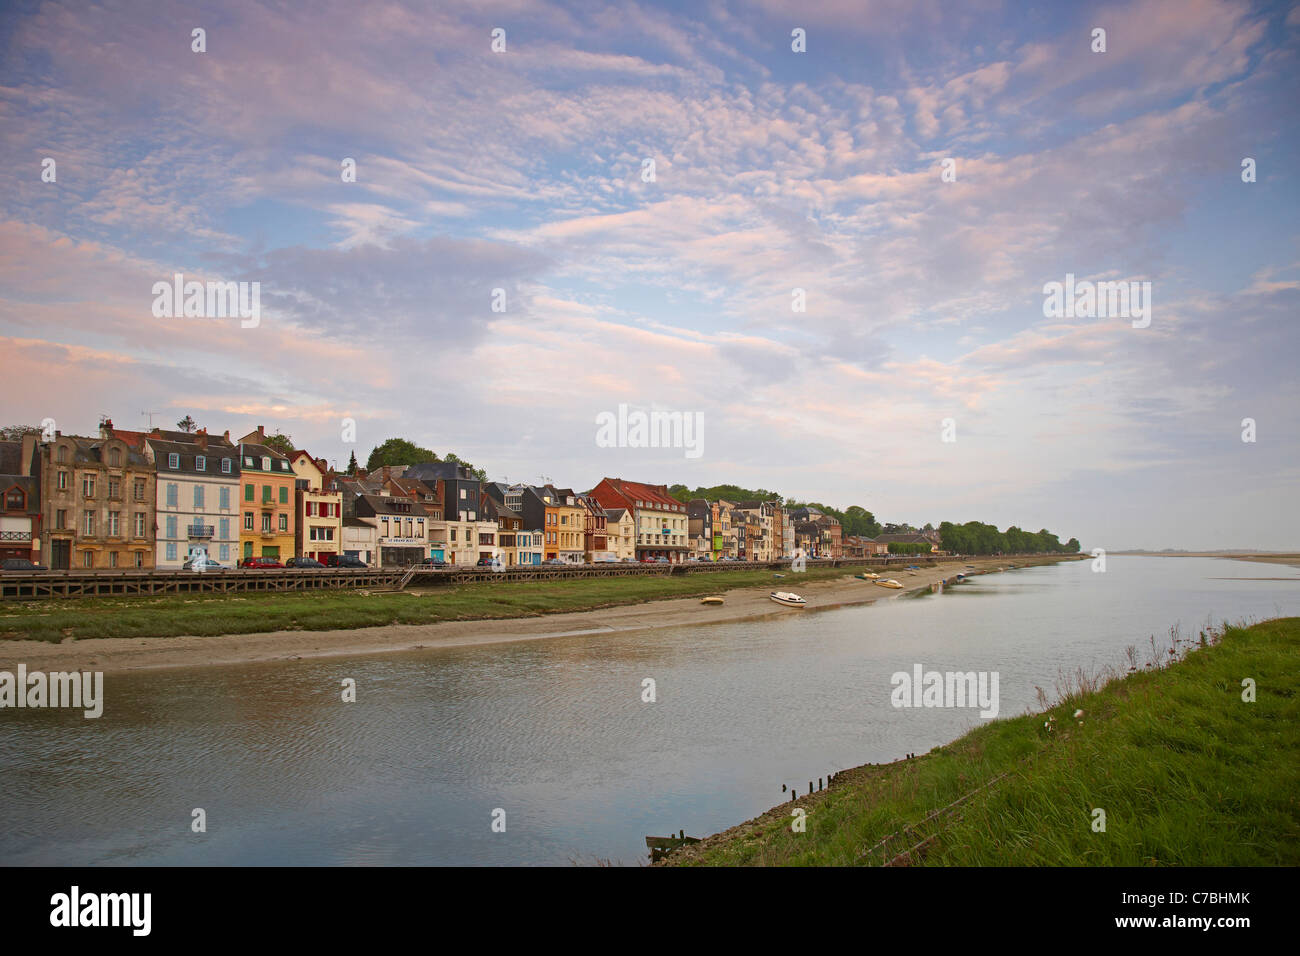 Early morning at Saint-Valery-sur-Somme, Dept. Somme, Picardie, France, Europe - Stock Image